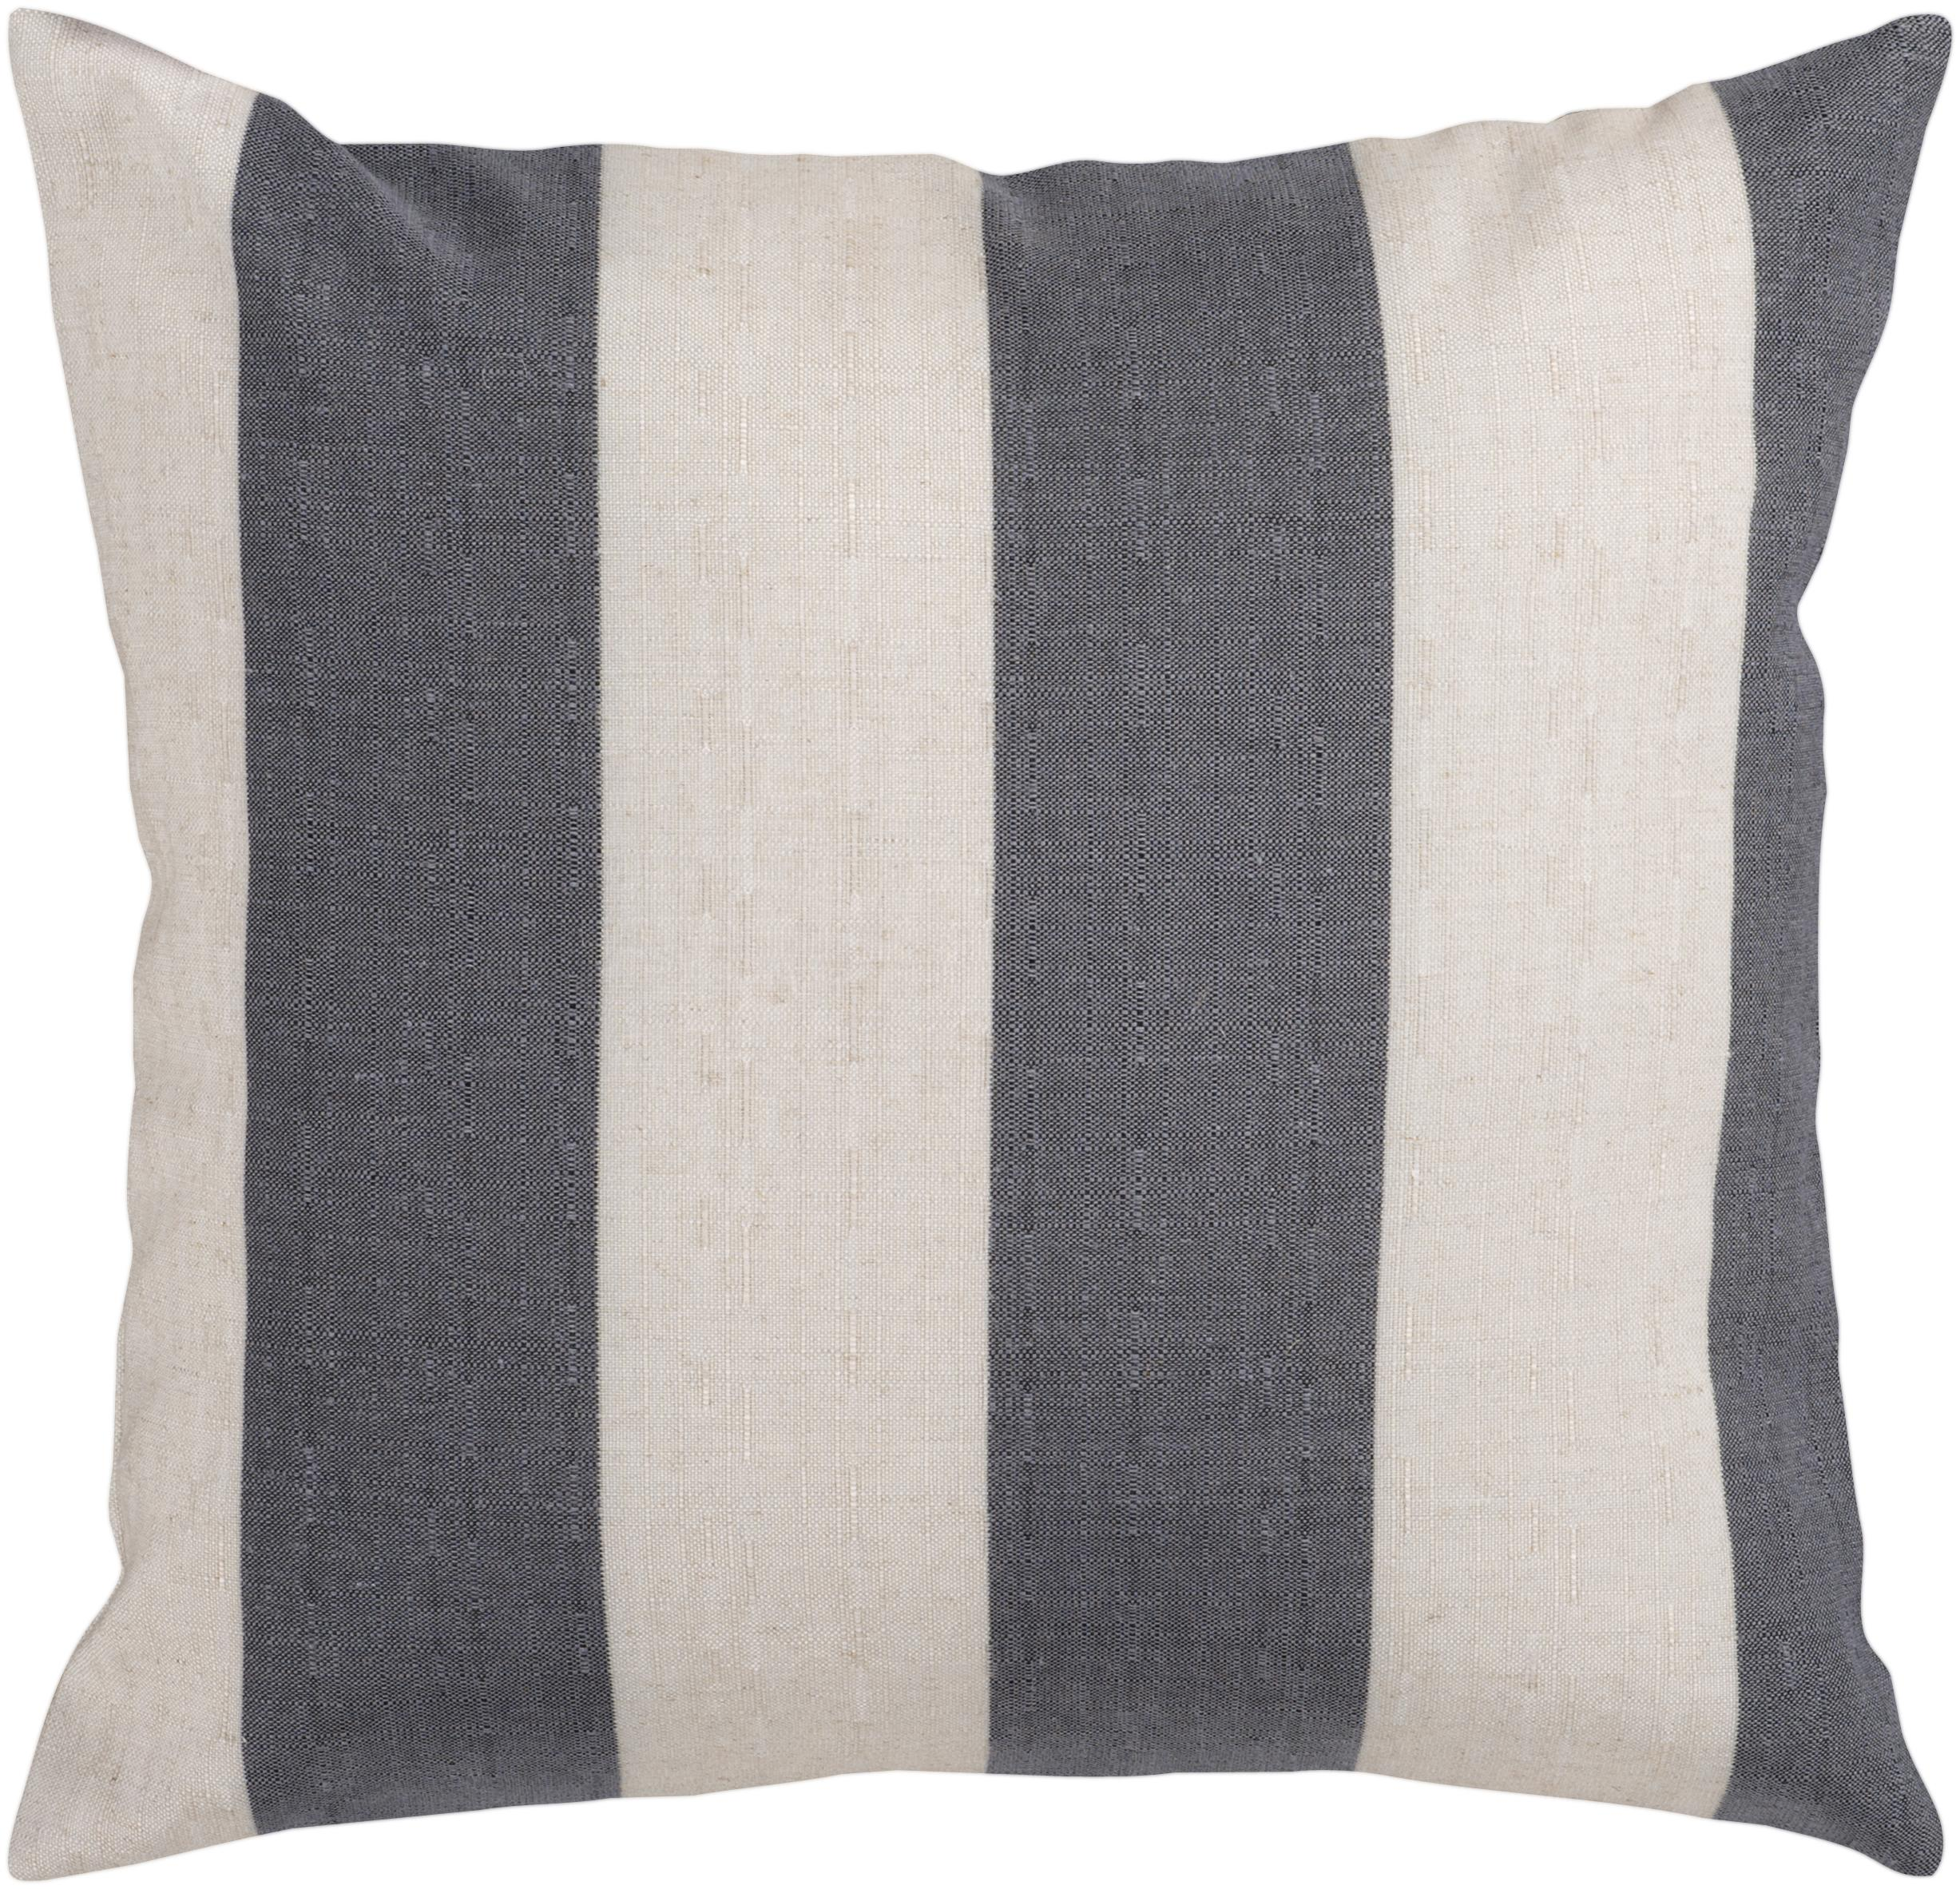 "Surya Pillows 22"" x 22"" Pillow - Item Number: JS009-2222P"